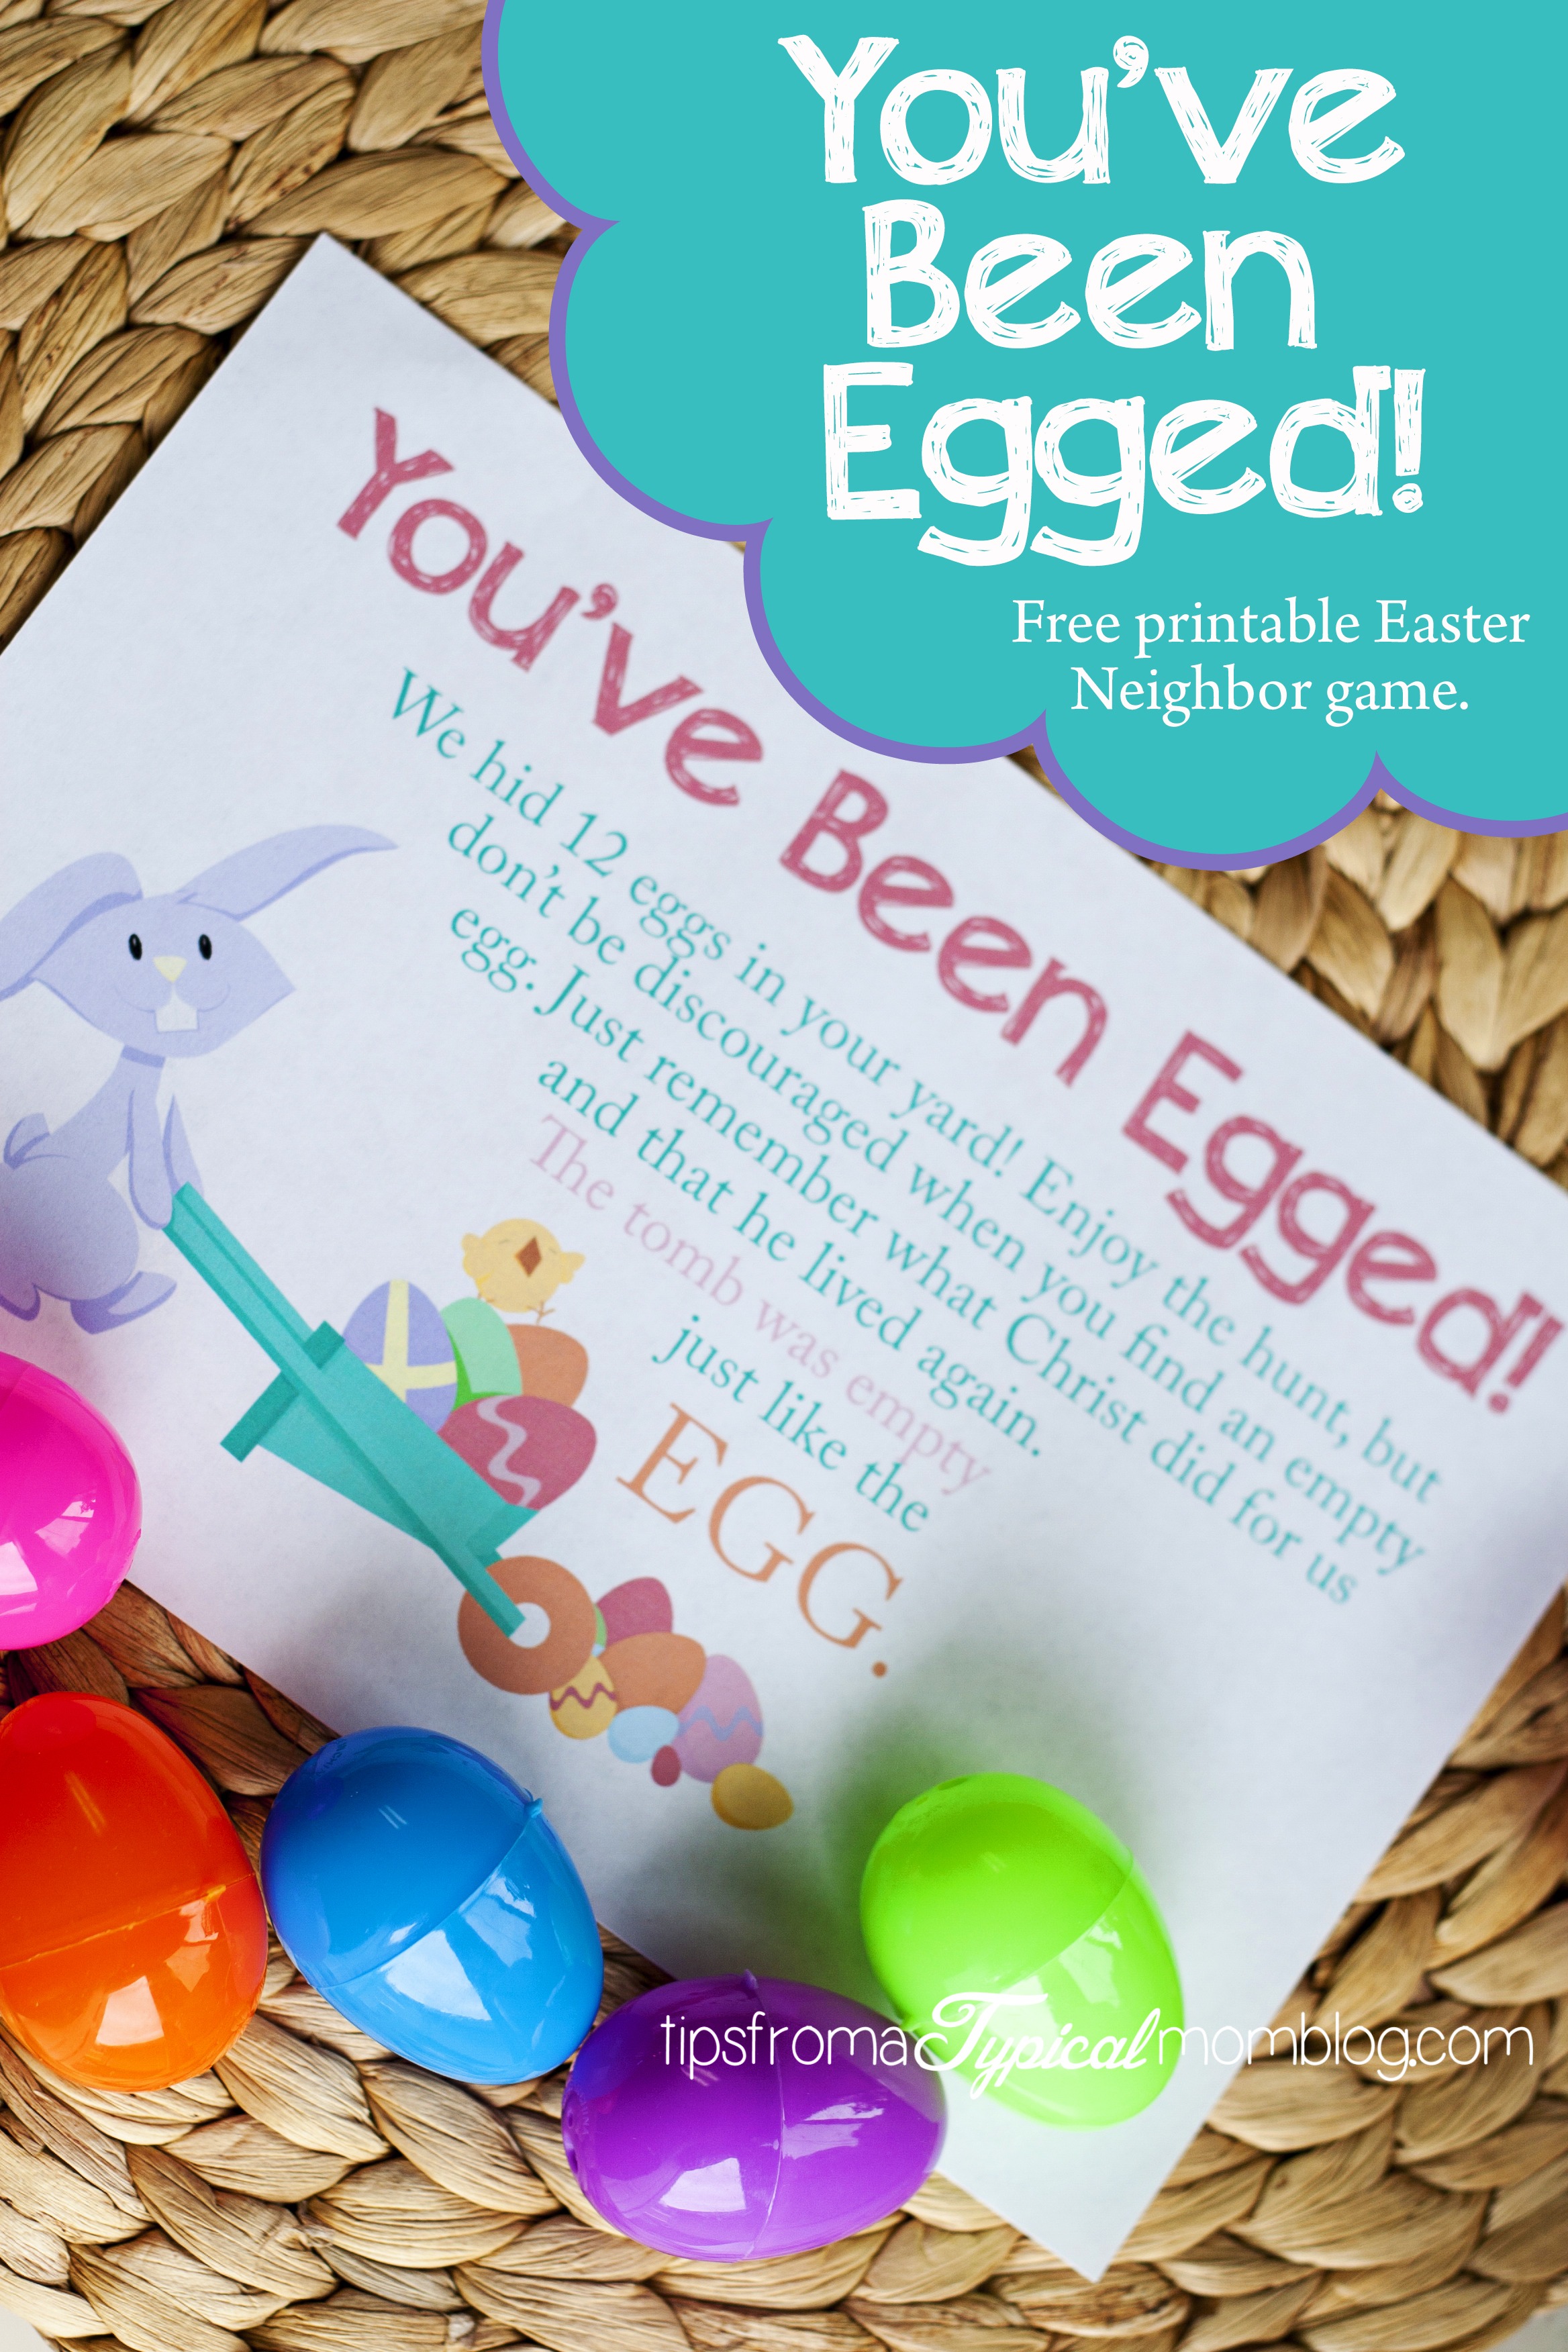 photo relating to You Ve Been Egged Printable known as Youve Been Egged- Cost-free Printable Neighbor Easter Video game